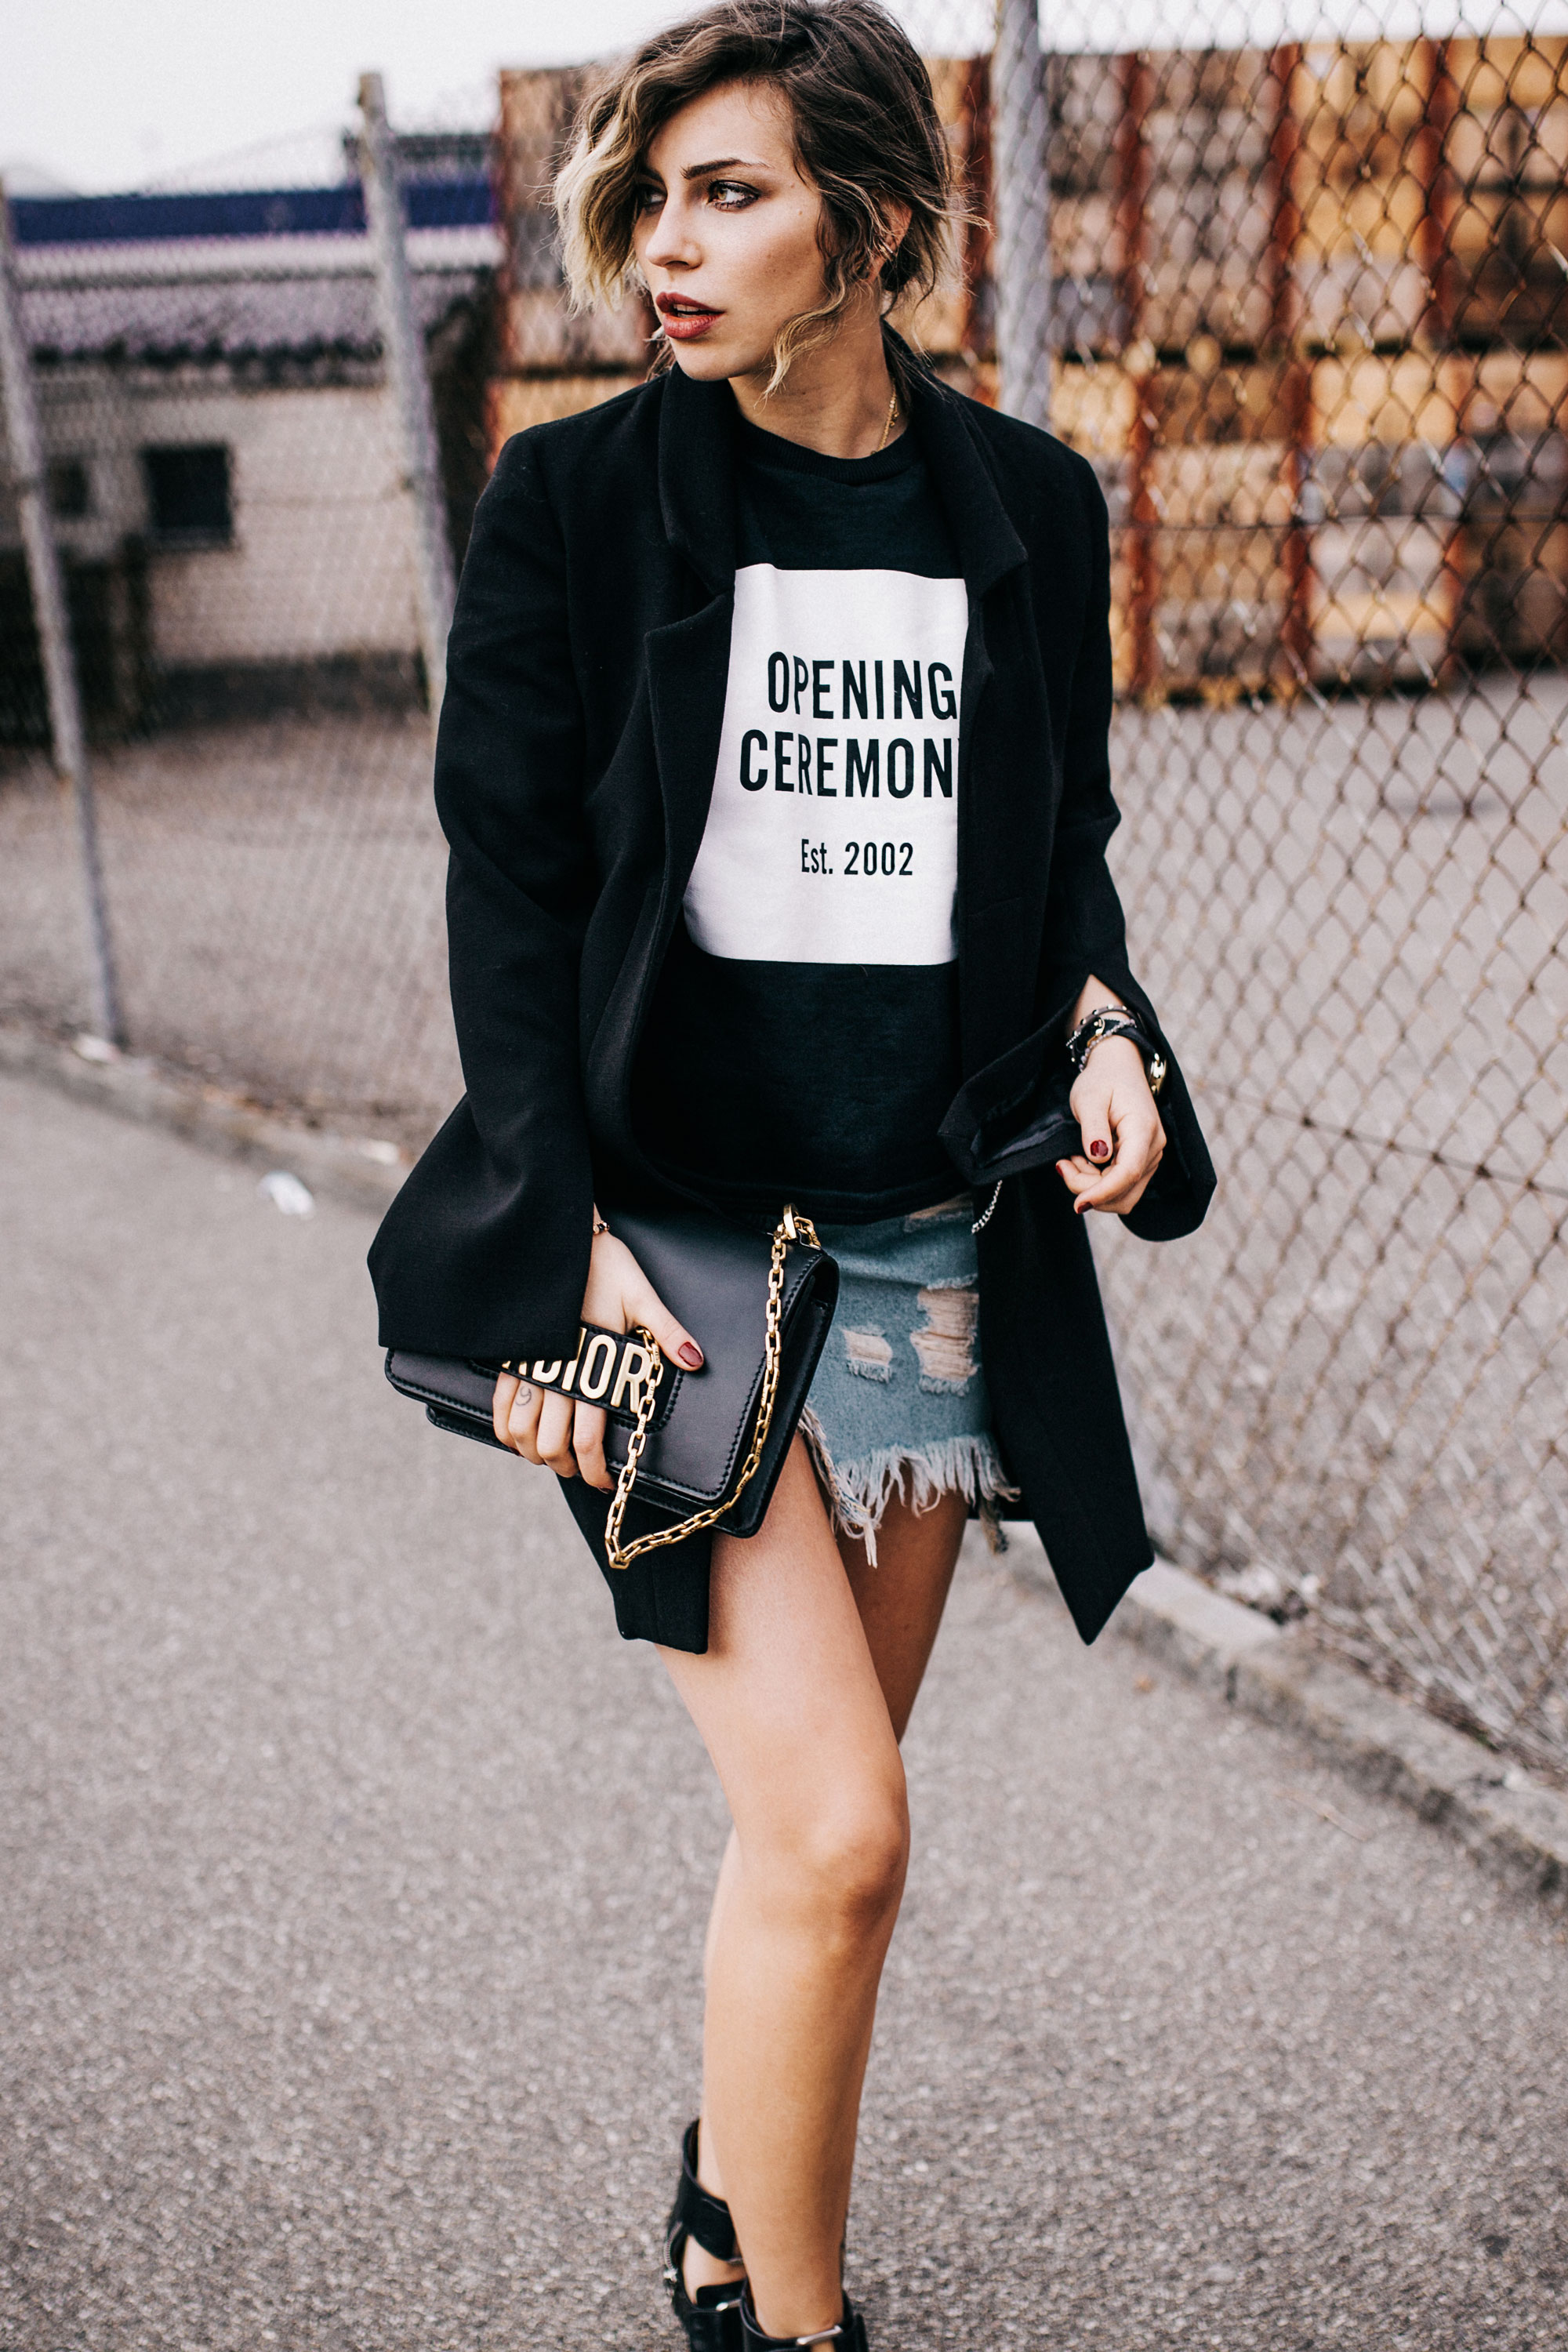 Fashion Editorial shooting with street art | style: rock, edgy, grunge, summer, dark, black, cool, industrial | wearing a Zara denim skirt, an oversized black blazer, cut out boots from 3.1. phillip Lim and an opening ceremony sweater tee